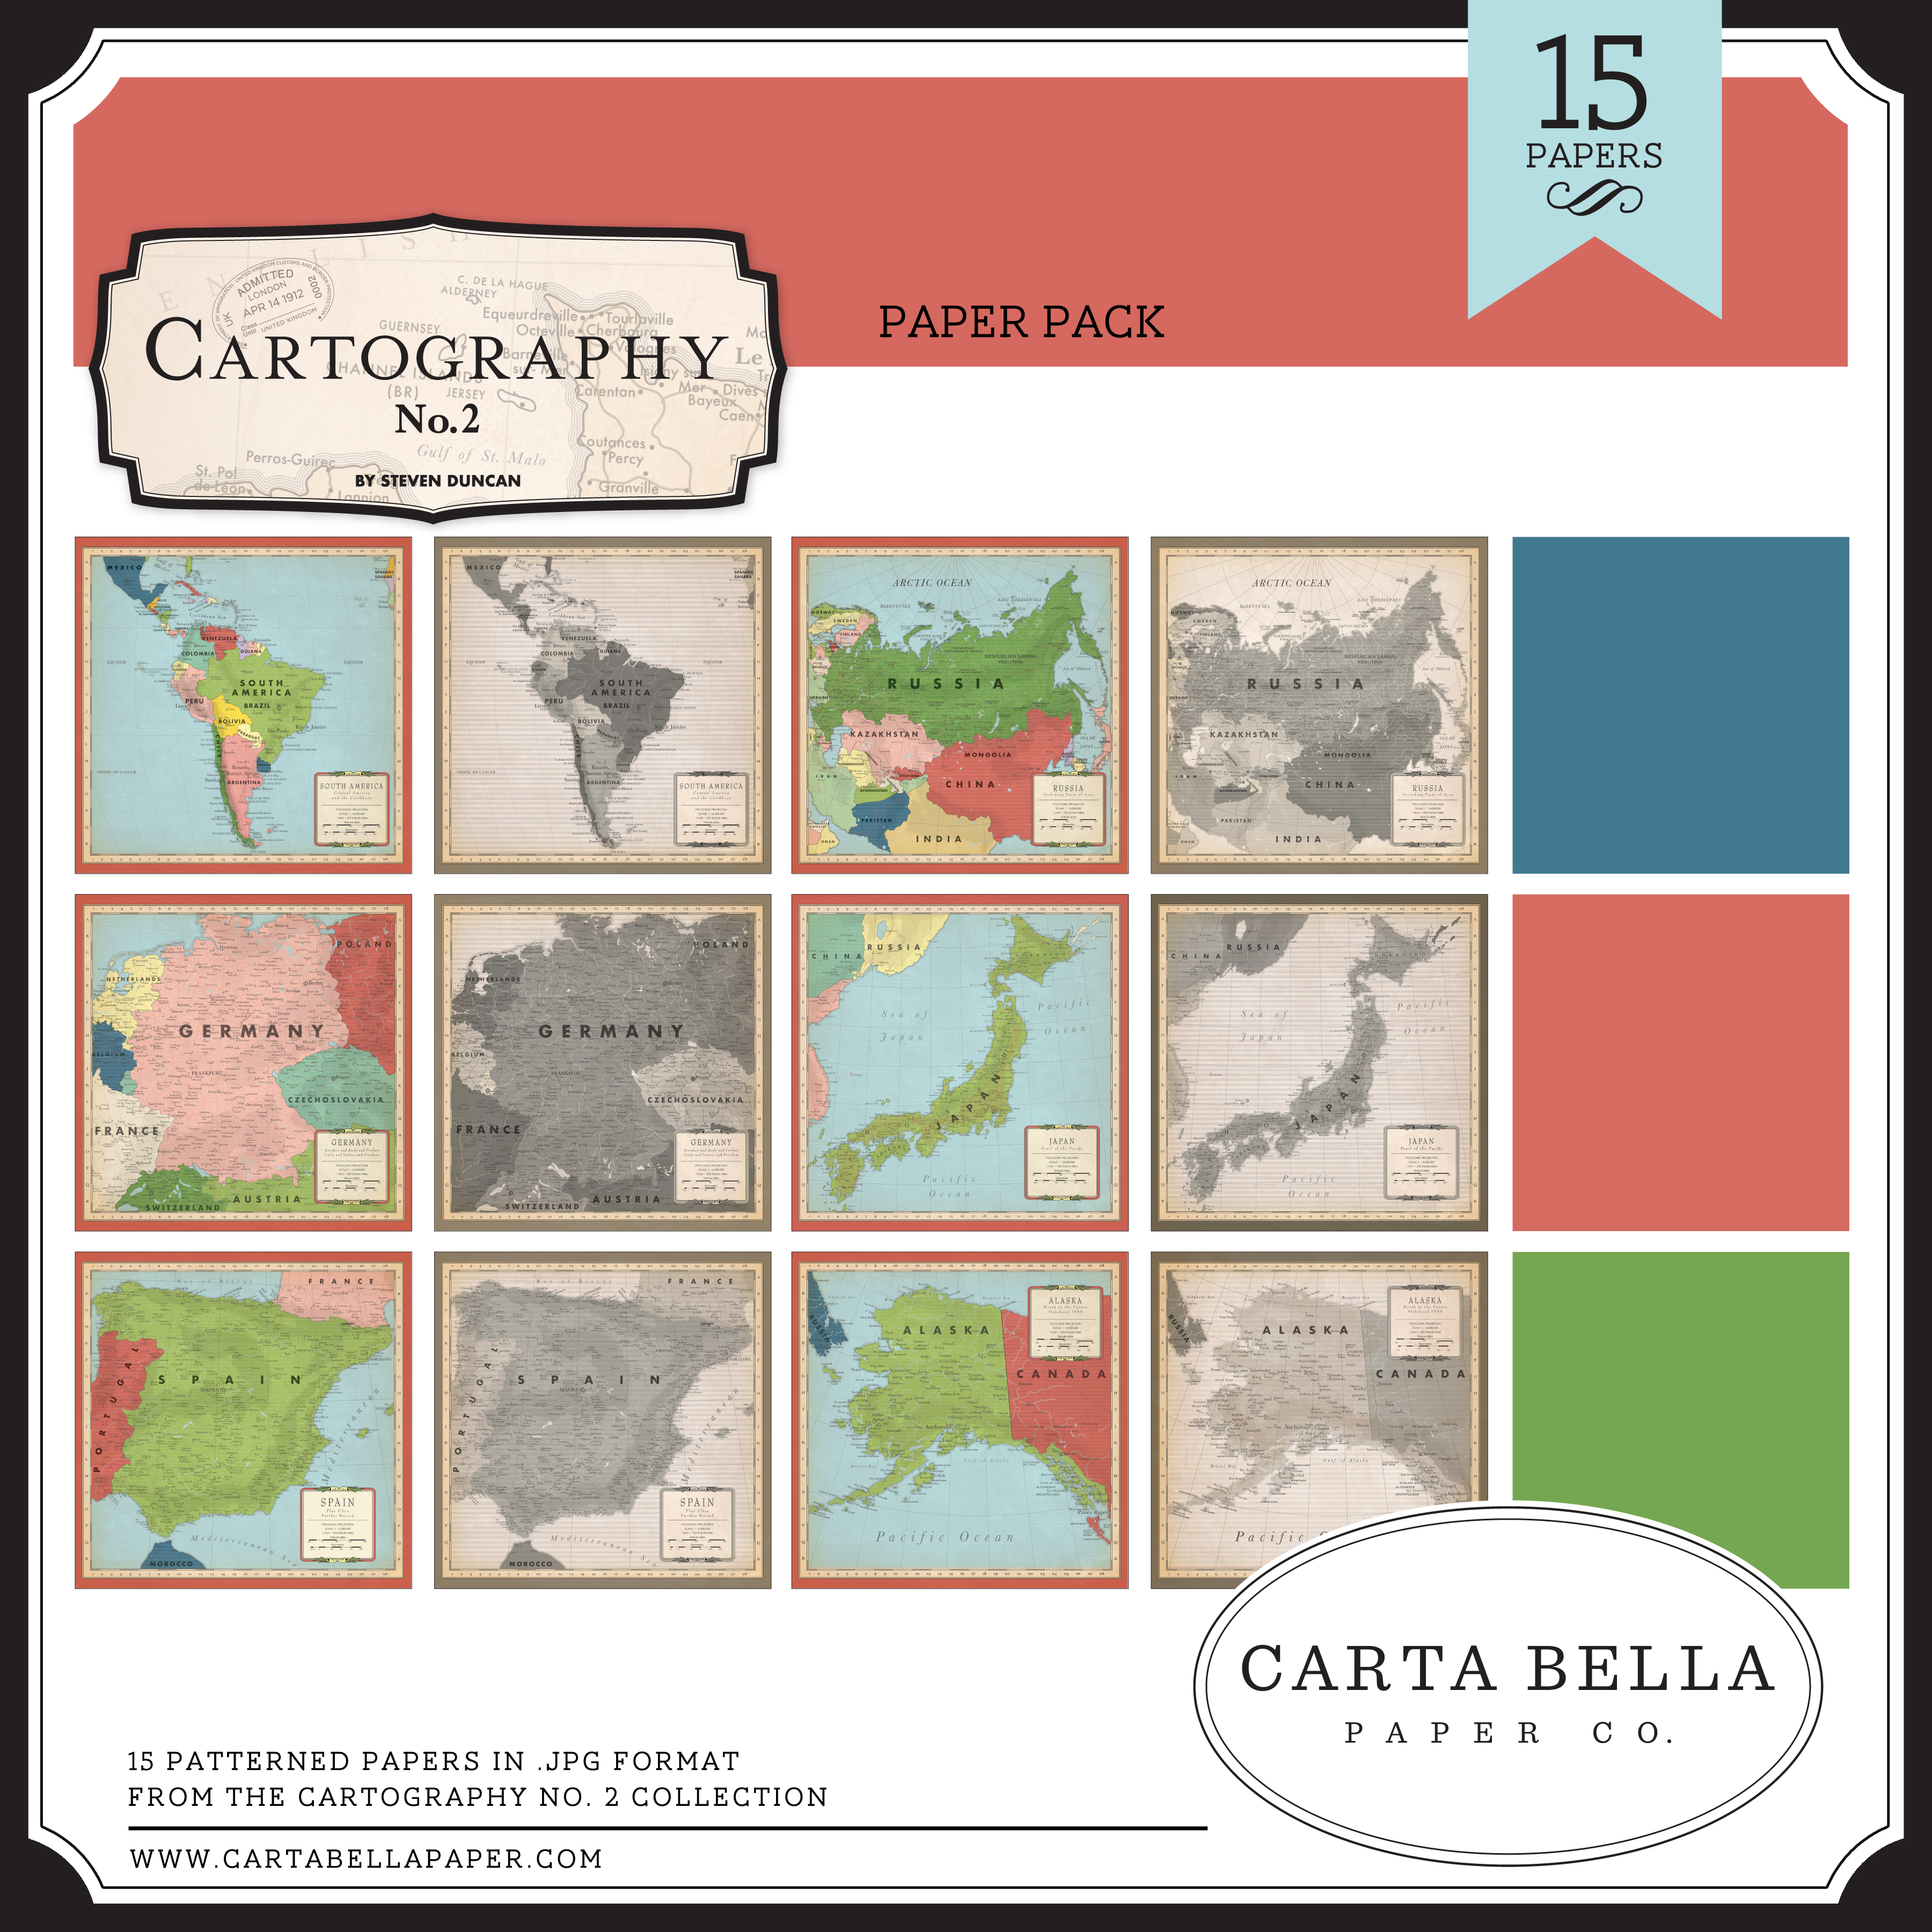 Cartography No. 2 Paper Pack